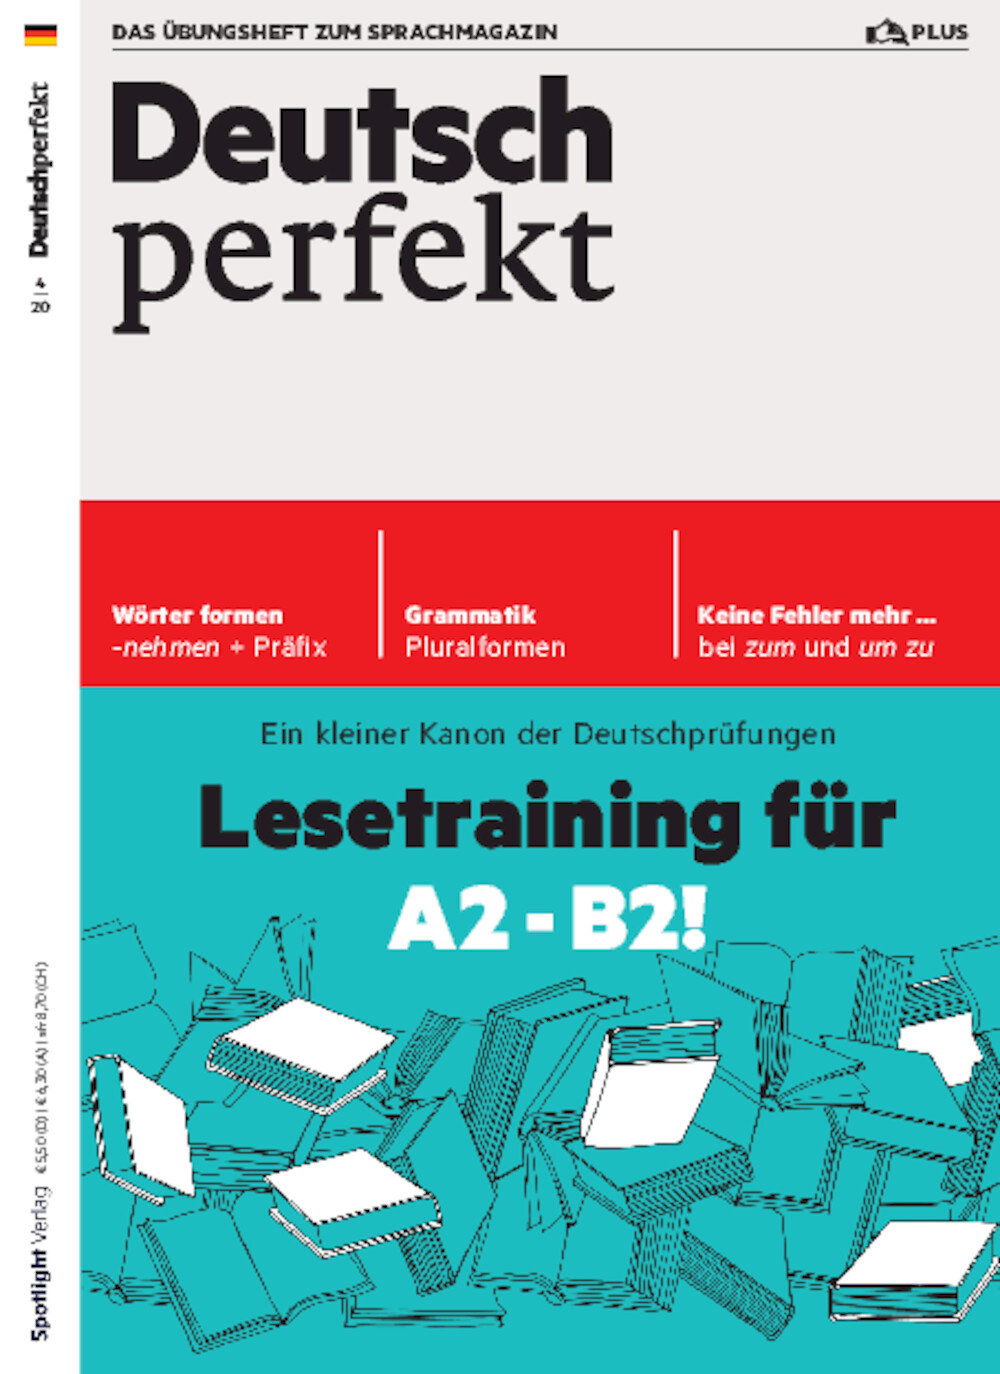 Deutsch perfekt PLUS ePaper 04/2020